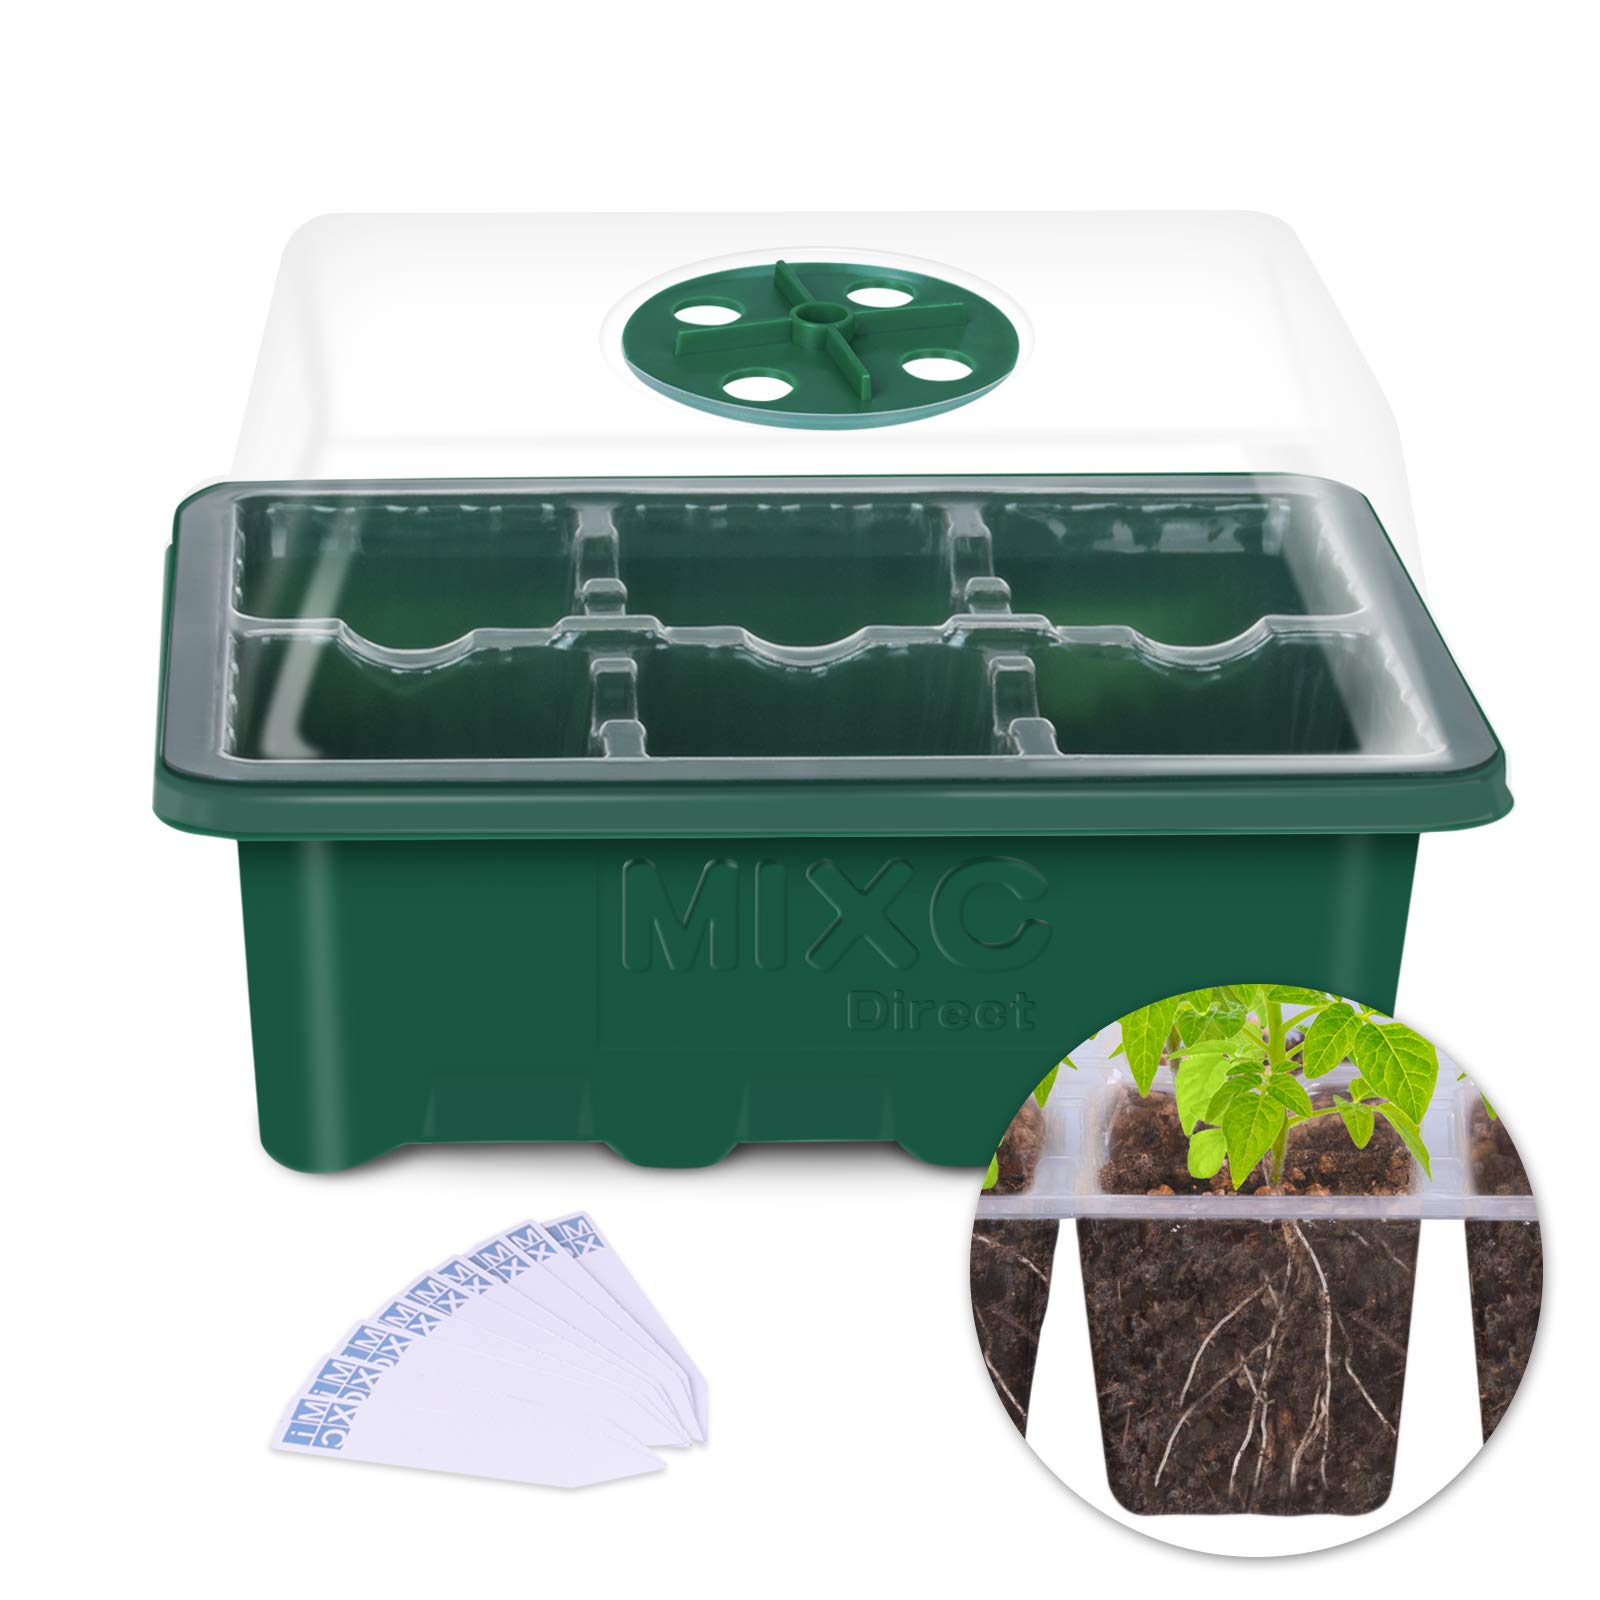 10 Set Seedling Trays Seed Starter Kit, MIXC 60 Large Cells Mini Propagator Plant Grow Kit with Humidity Vented Domes and Base for Seeds Starting Greenhouse (6 Cells per Tray) by MIXC